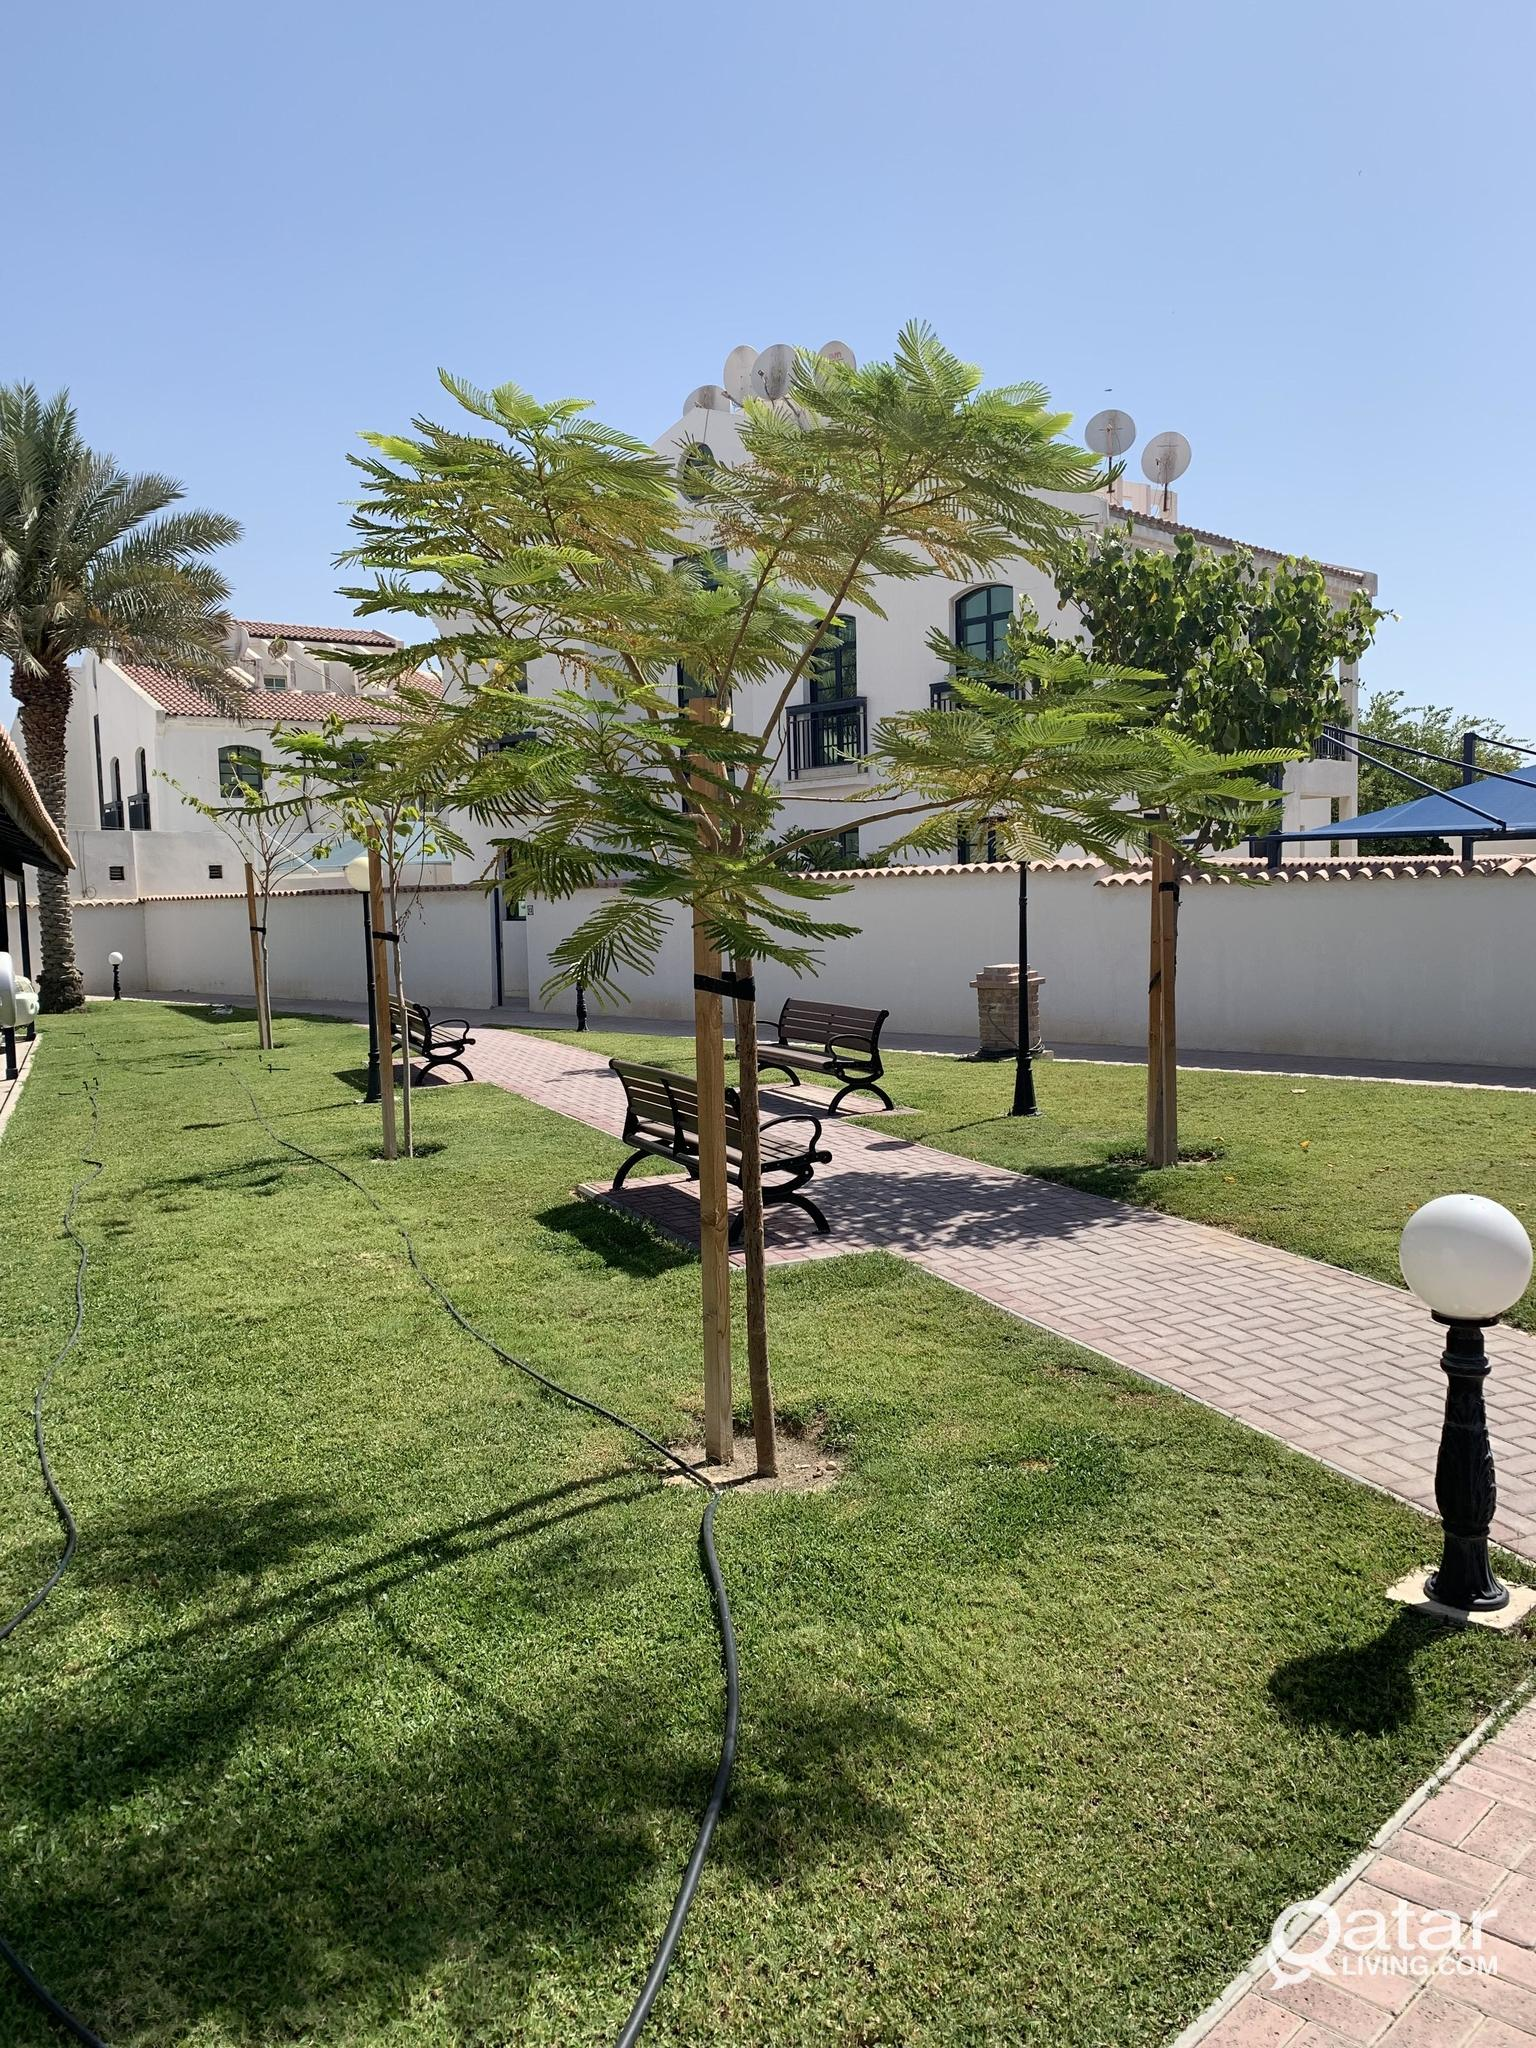 APARTMENT FOR RENT - PEARL GARDEN COMPOUND